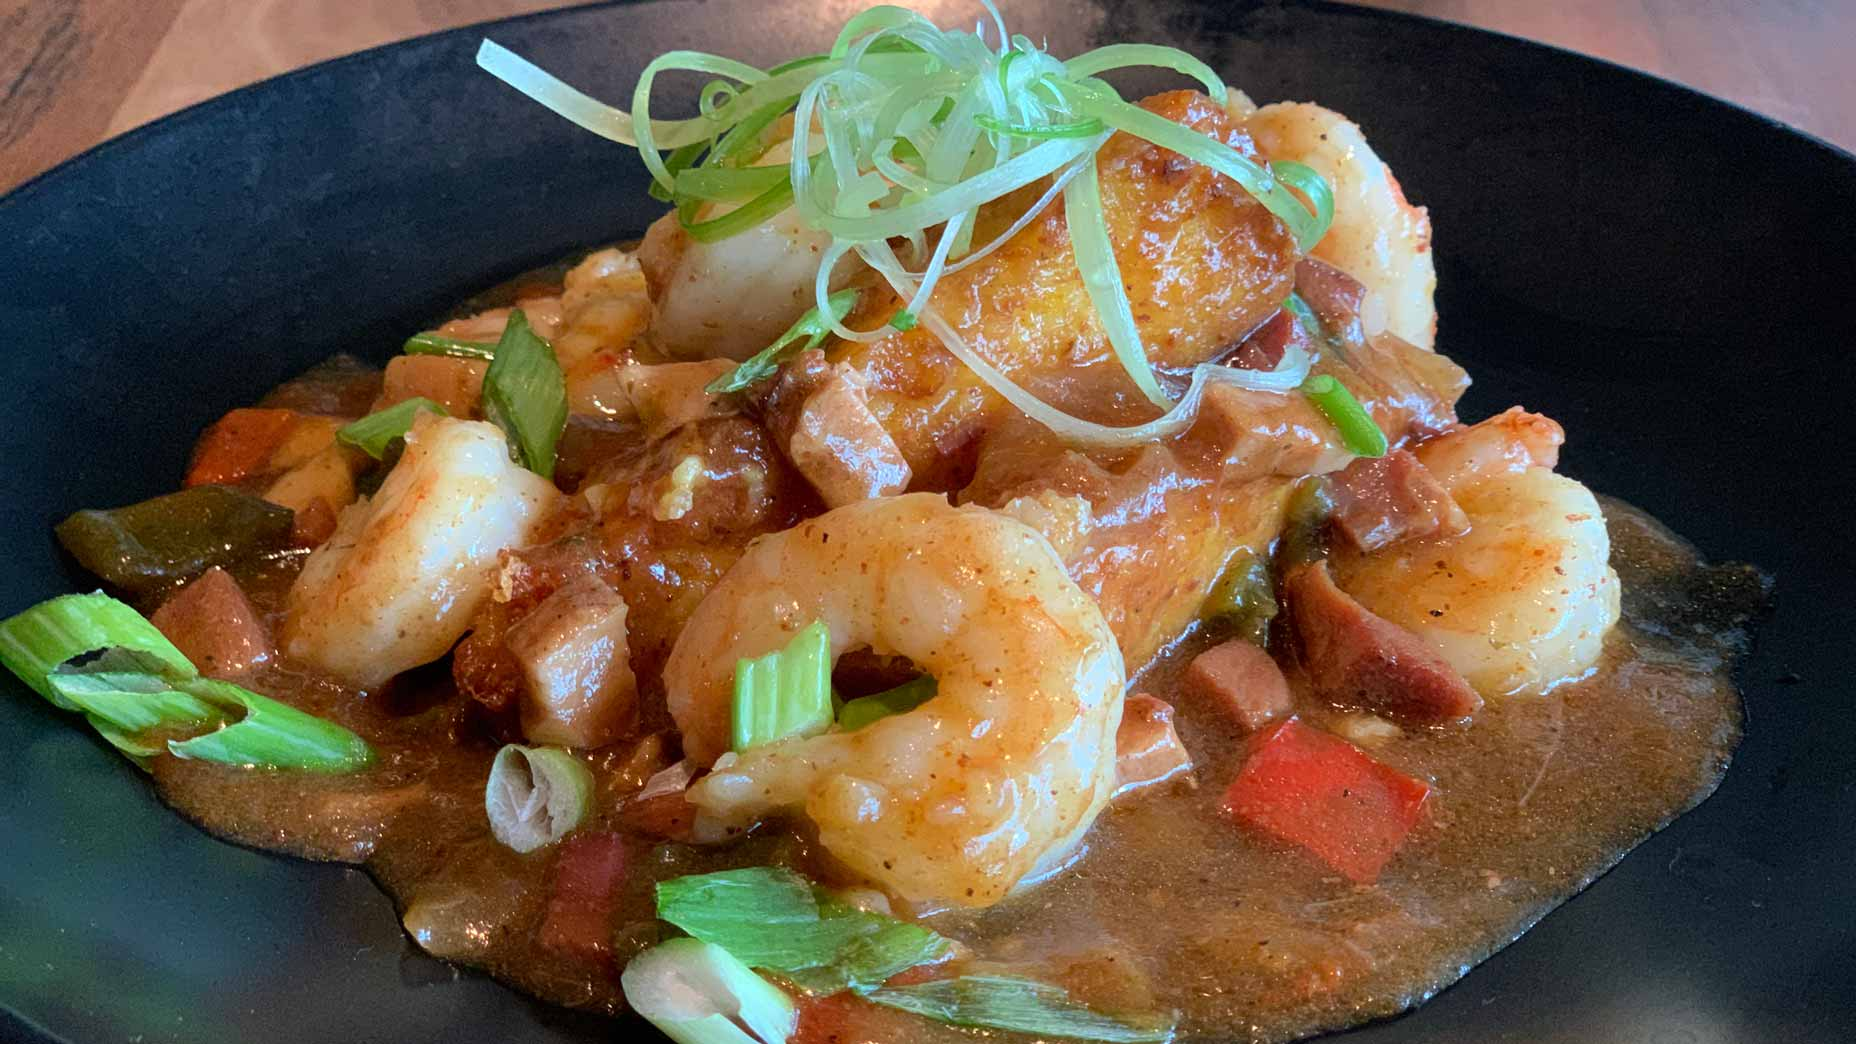 Shrimp and grits in a pan